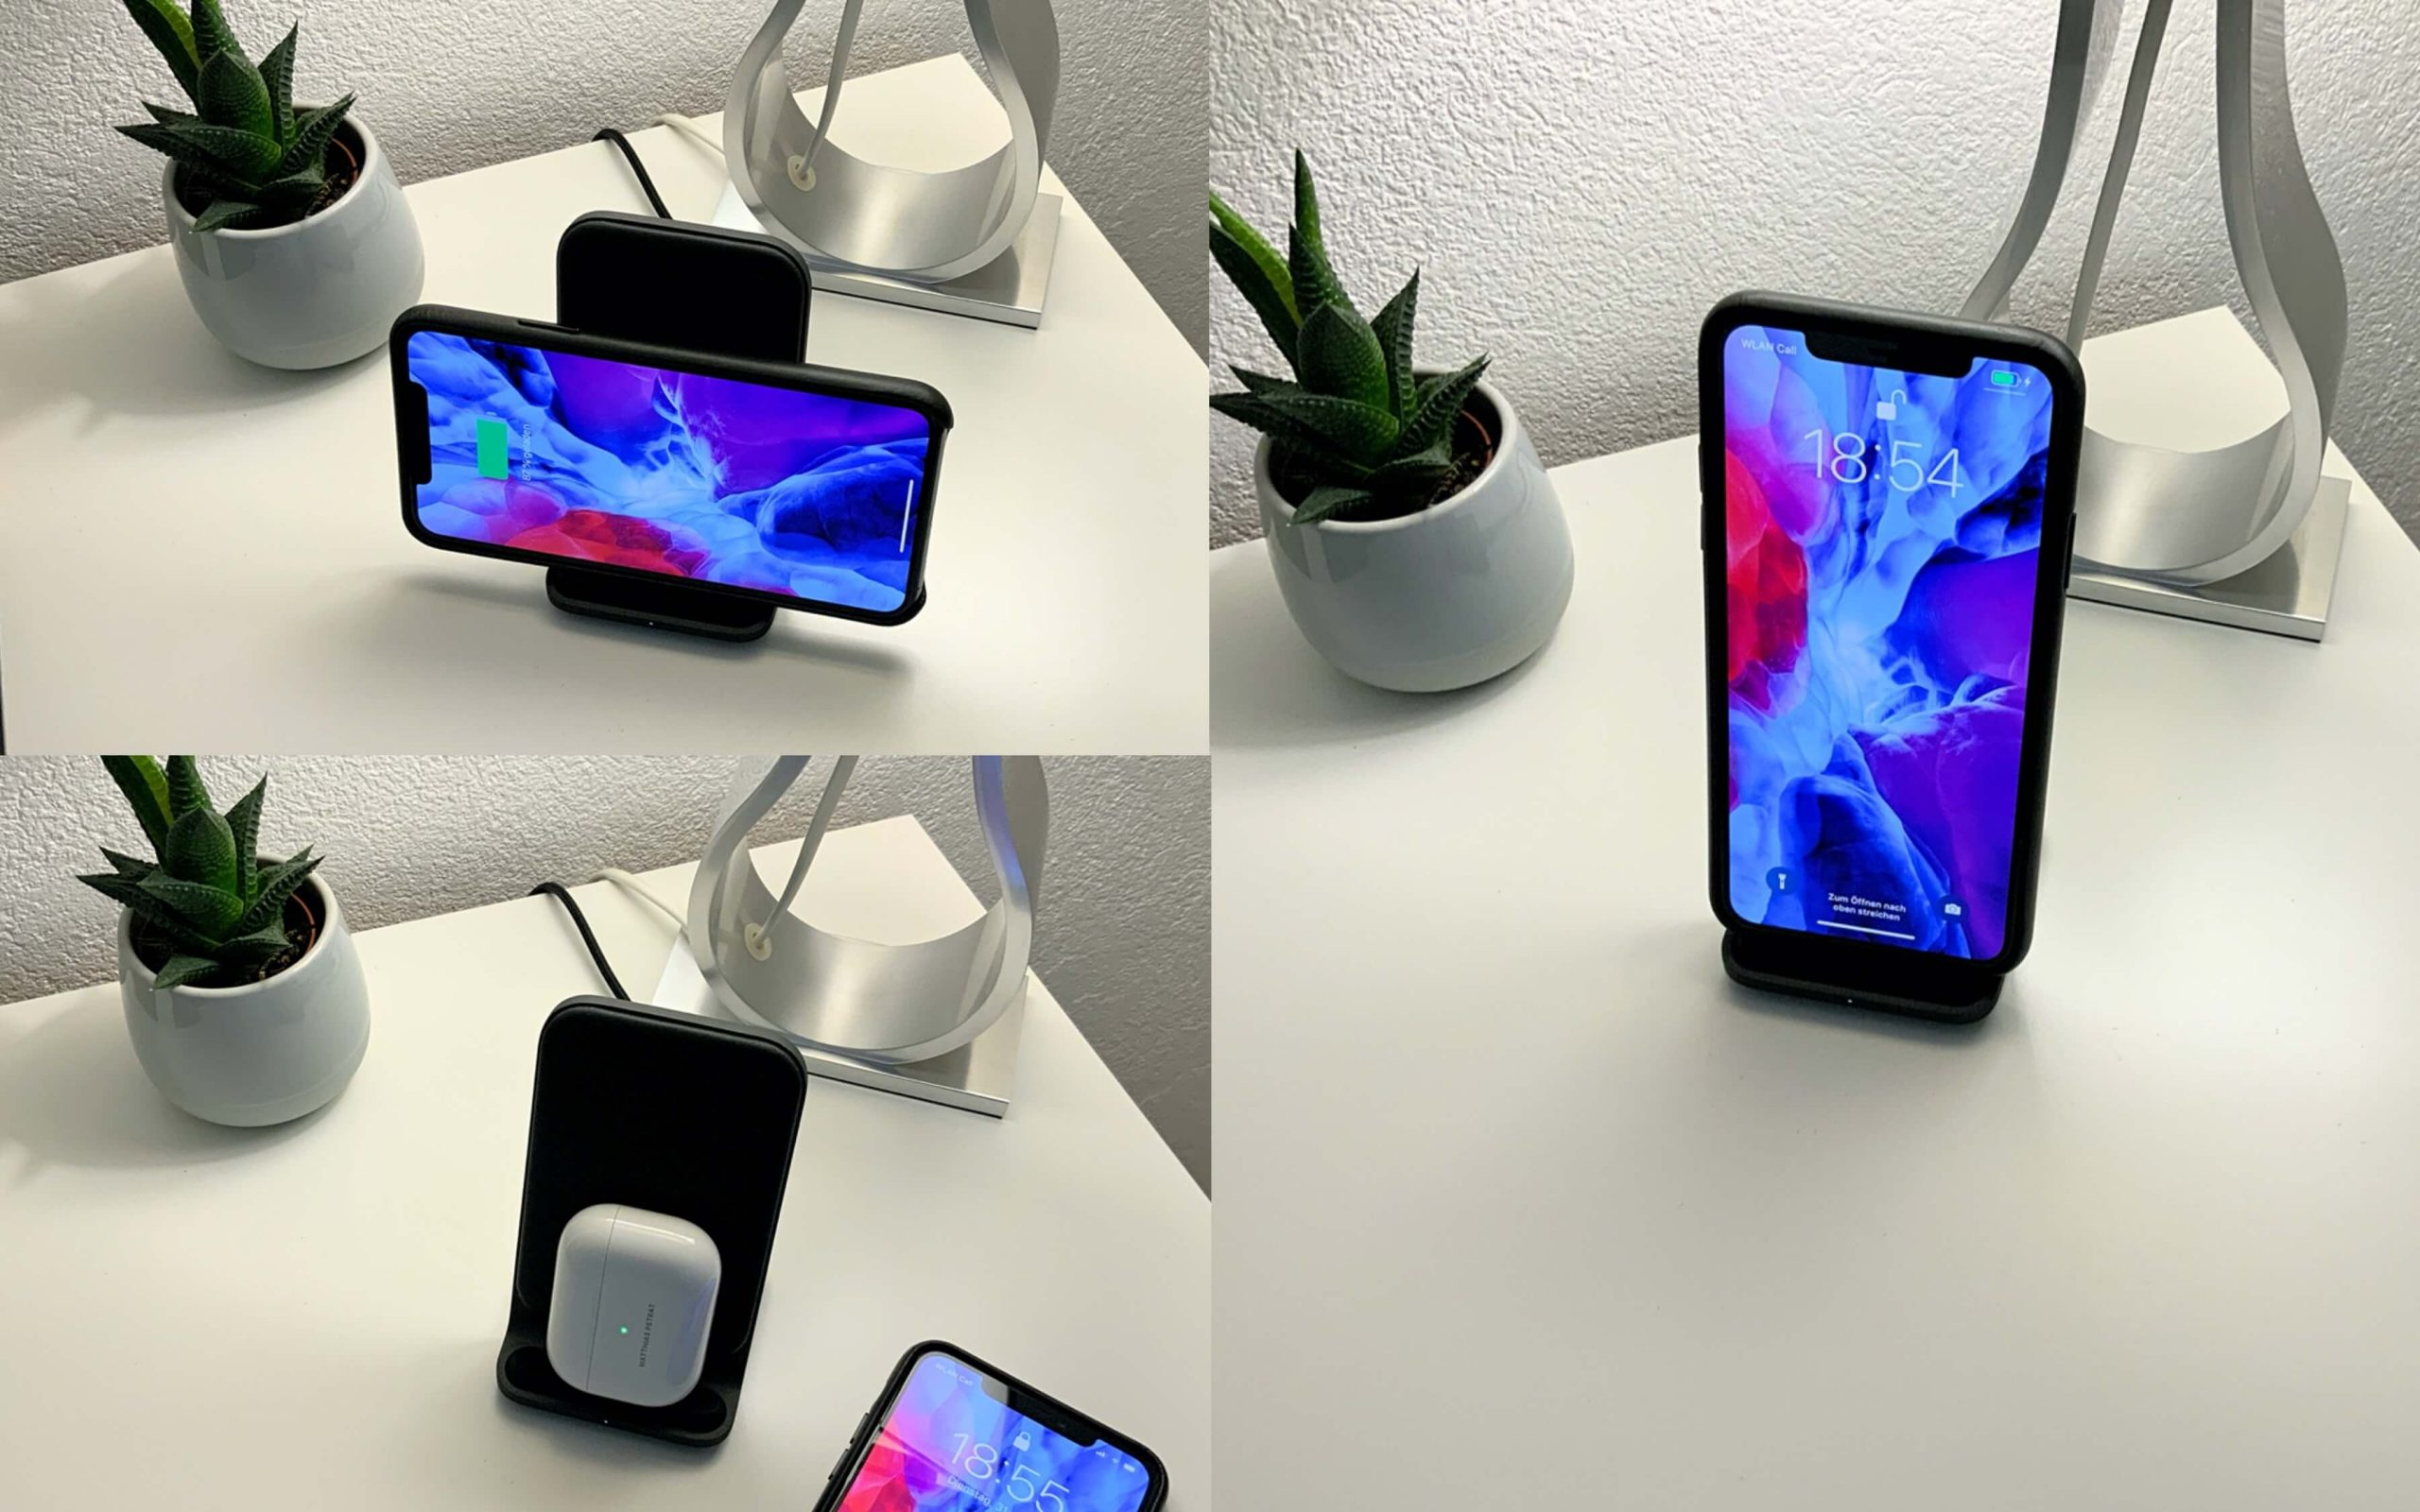 Nomad_Base_Station_Stand_iPhone_AirPods2-scaled Base Station Stand von Nomad - das iPhone drahtlos und elegant aufladen